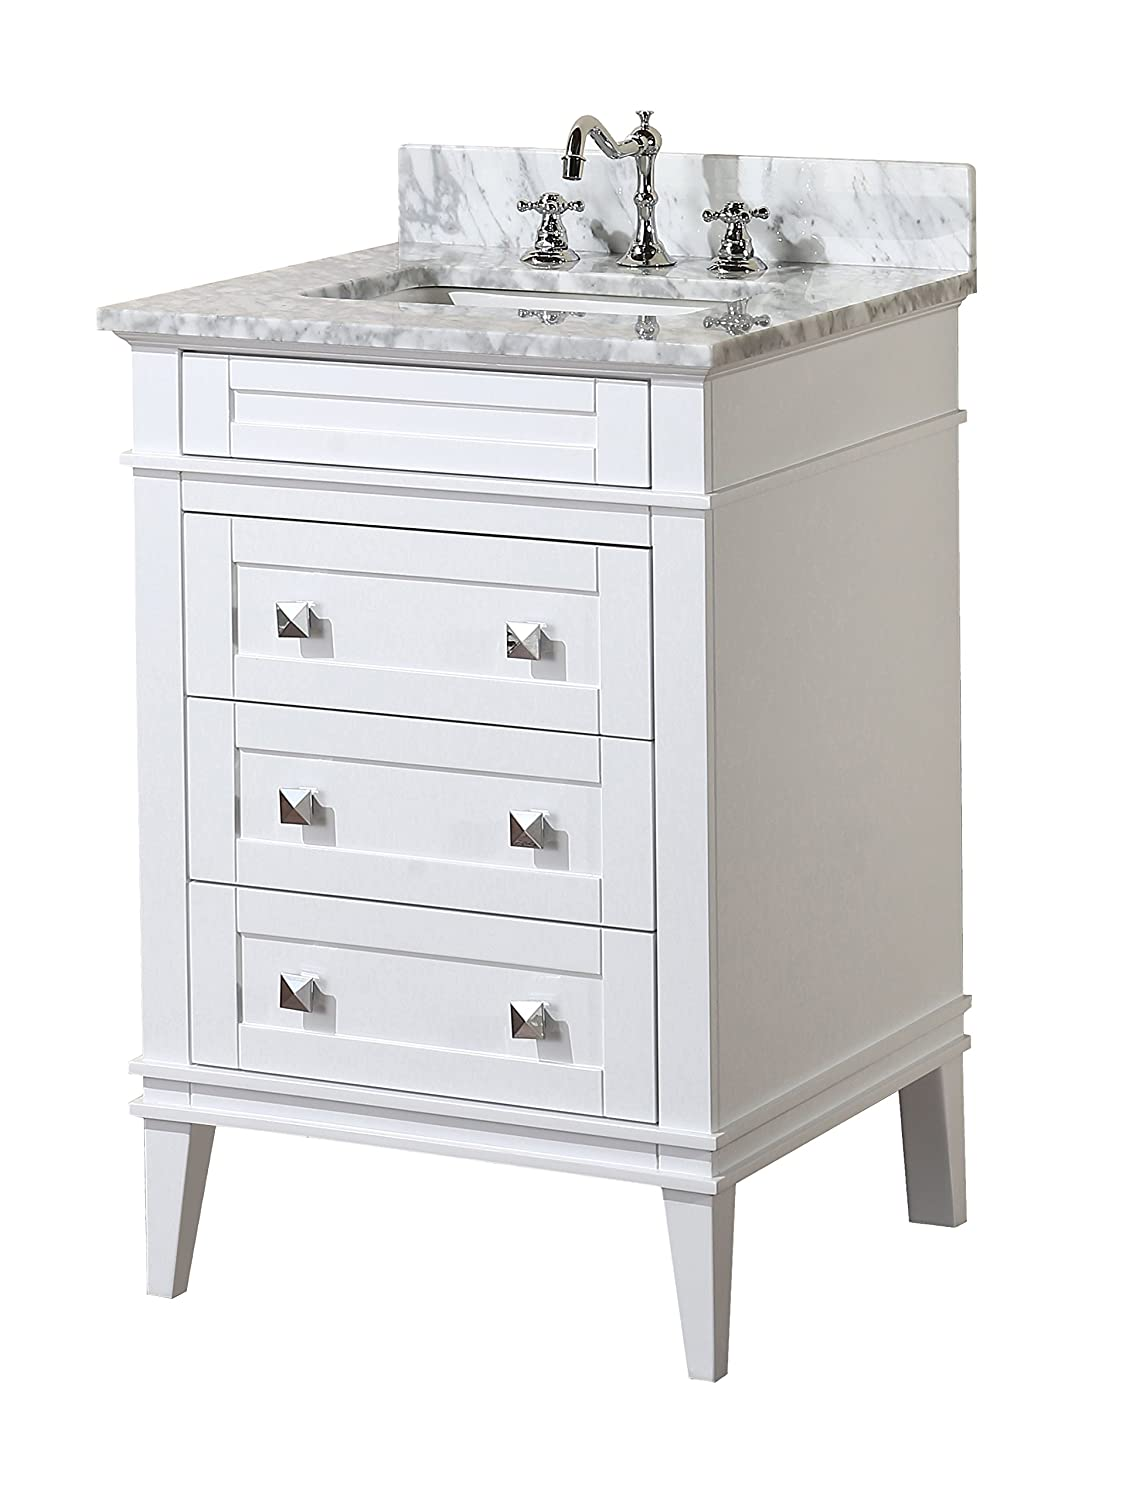 Kitchen Bath Collection KBC L24WTCARR Eleanor Bathroom Vanity With Marble  Countertop, Cabinet With Soft Close Function U0026 Undermount Ceramic Sink,  24